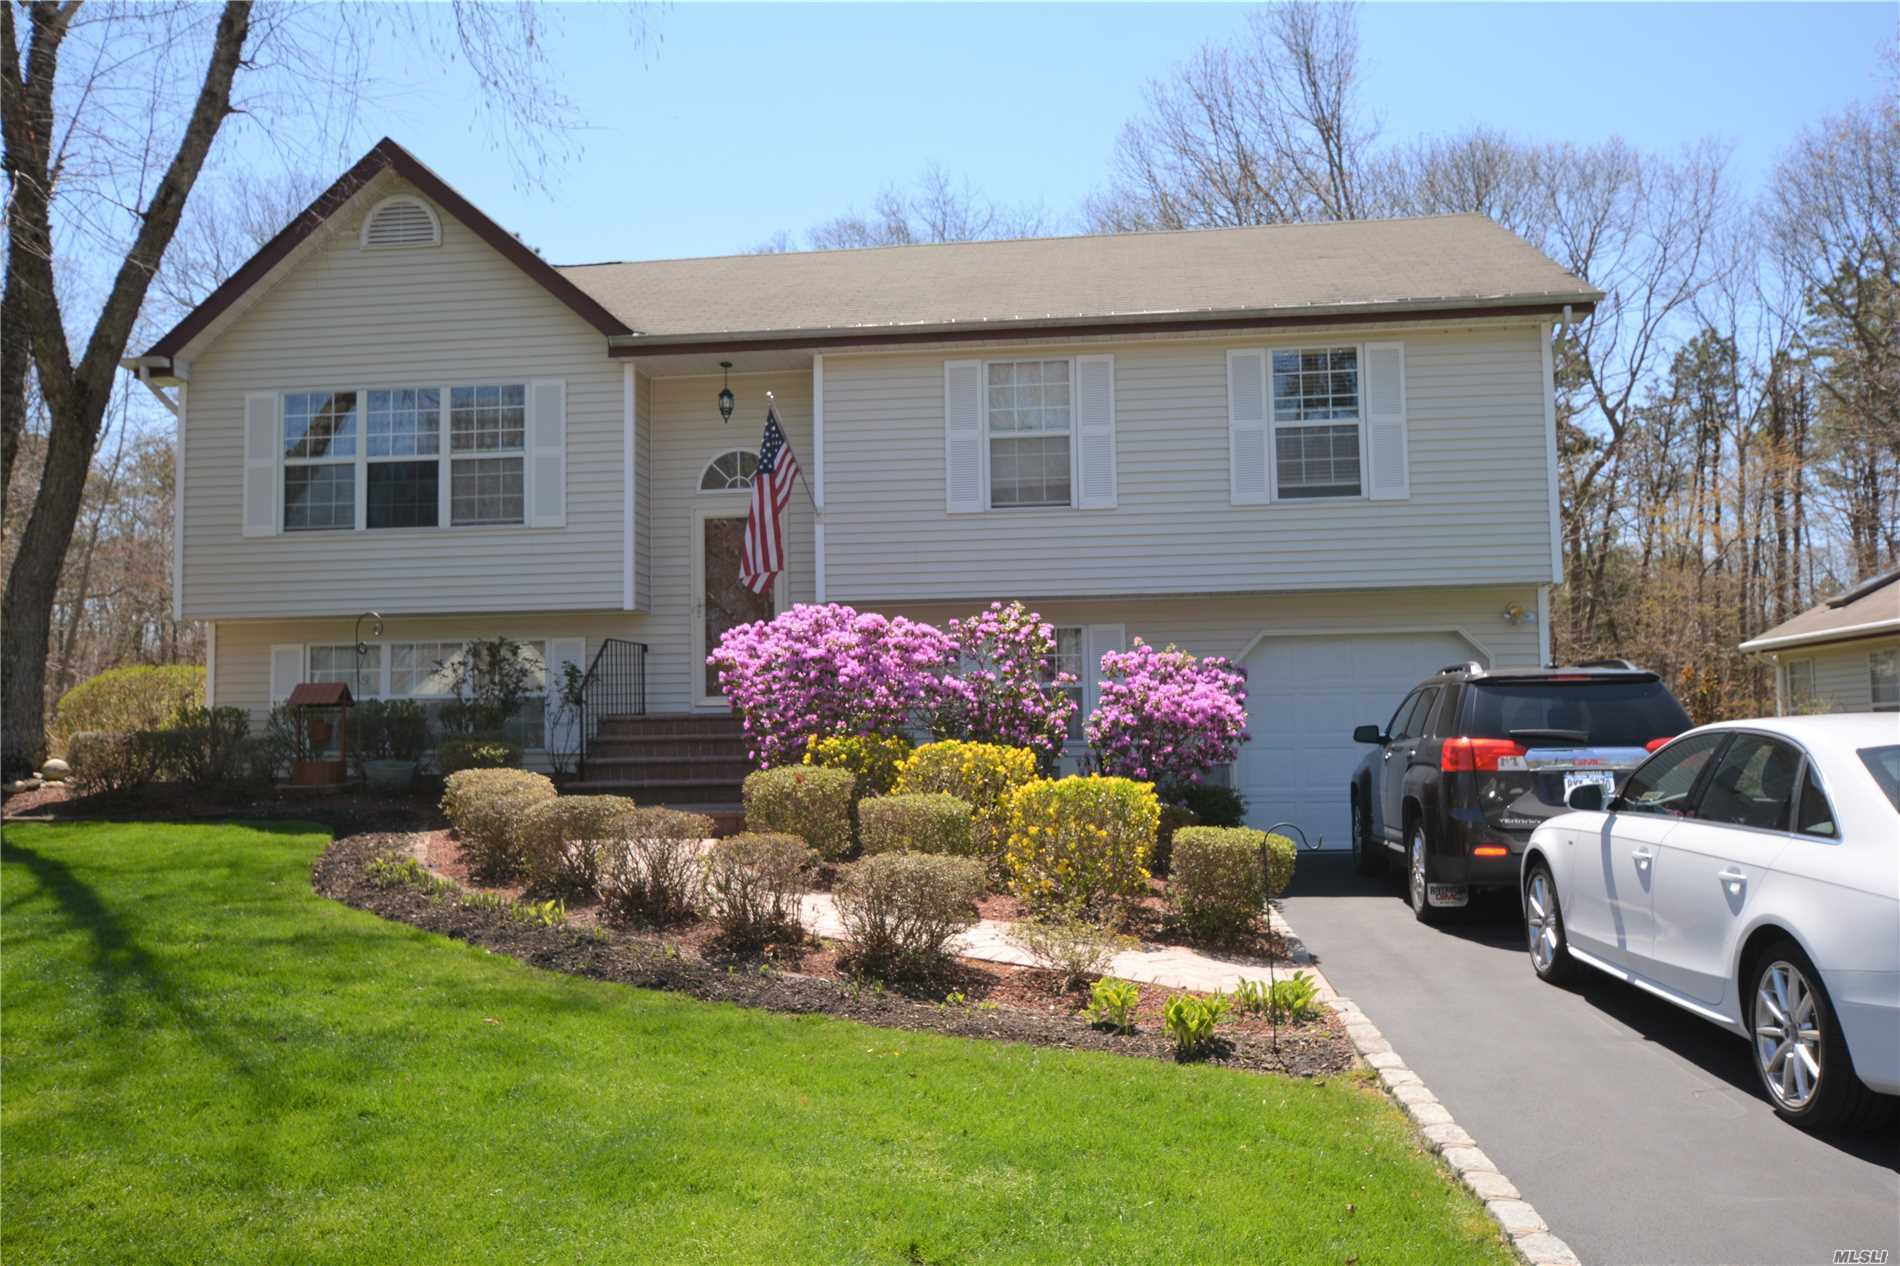 Back On The Market!  Motivated Seller! Diamond Home In Cul De Sac. Just Move In. 3Br With Office That Can Be Turned Into A 4th Bedroom. Eik, Two Full Baths, Lr, Dr And Large Den/Family Rm. Large Outdoor Deck For Entertaining. View Of Golf Course. Gated Community, Tennis Court, Basketball Court, Pool, And Recreation Area. Must See, You Will Fall In Love With This Home And The Grounds. Maintenance Includes All Landscaping, Snow Removal, Street Maintenance, Garbage, And Water. Wont Last!